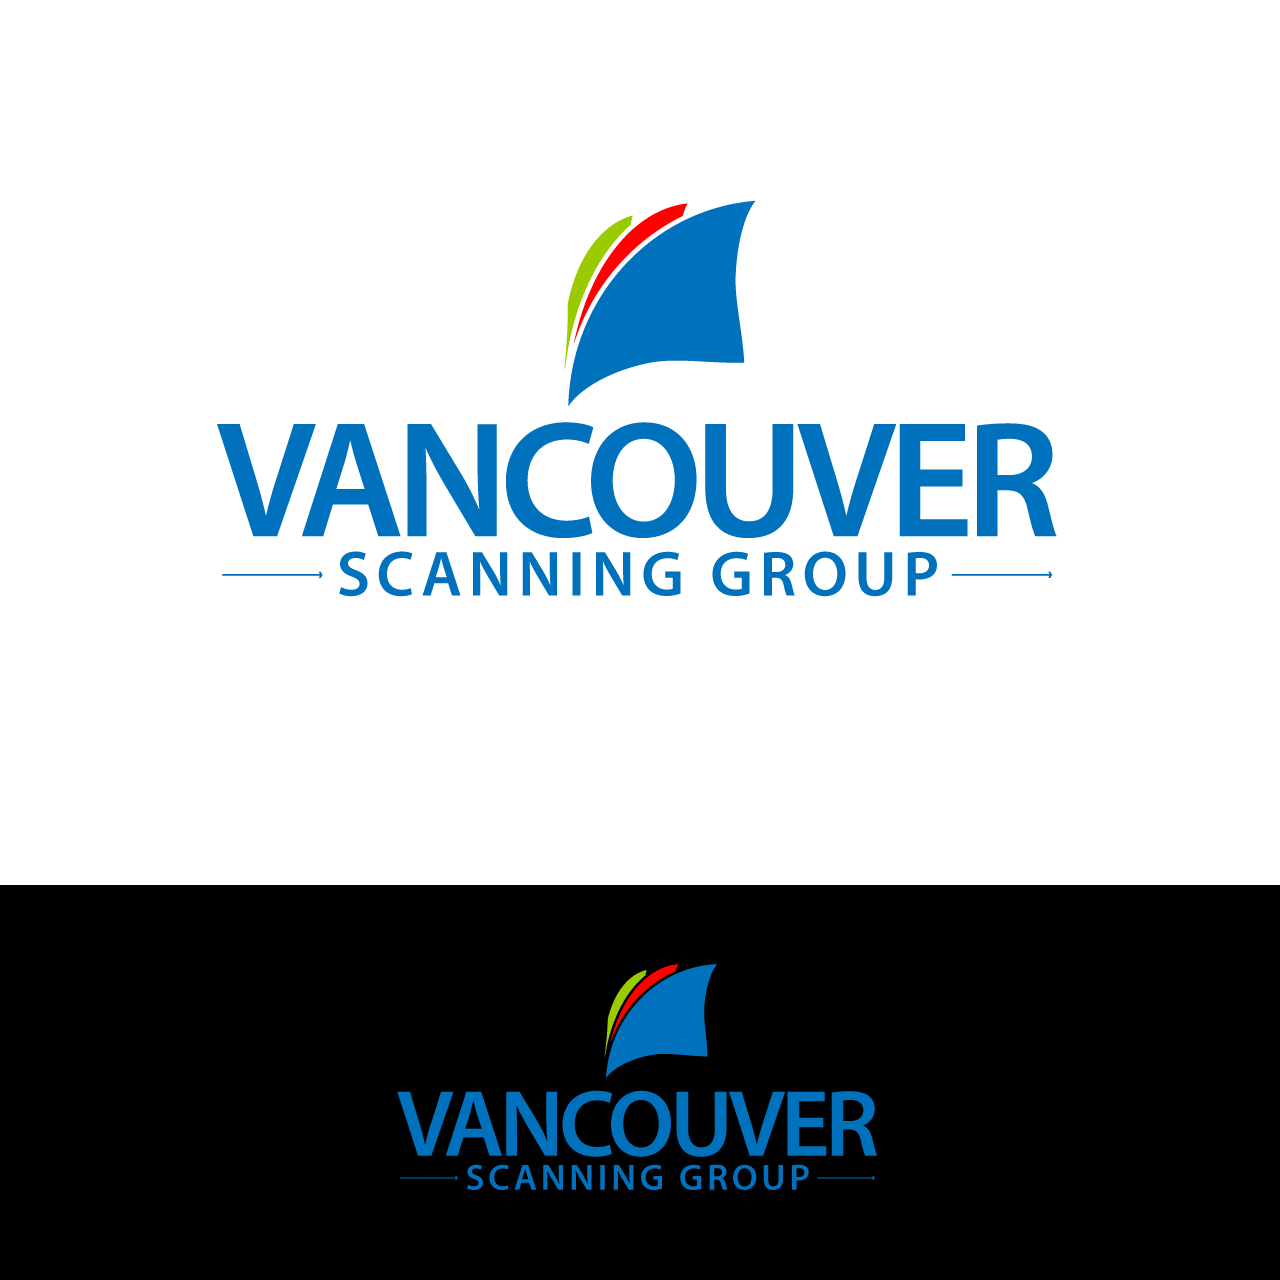 Logo Design by umxca - Entry No. 26 in the Logo Design Contest Vancouver Scanning Group.